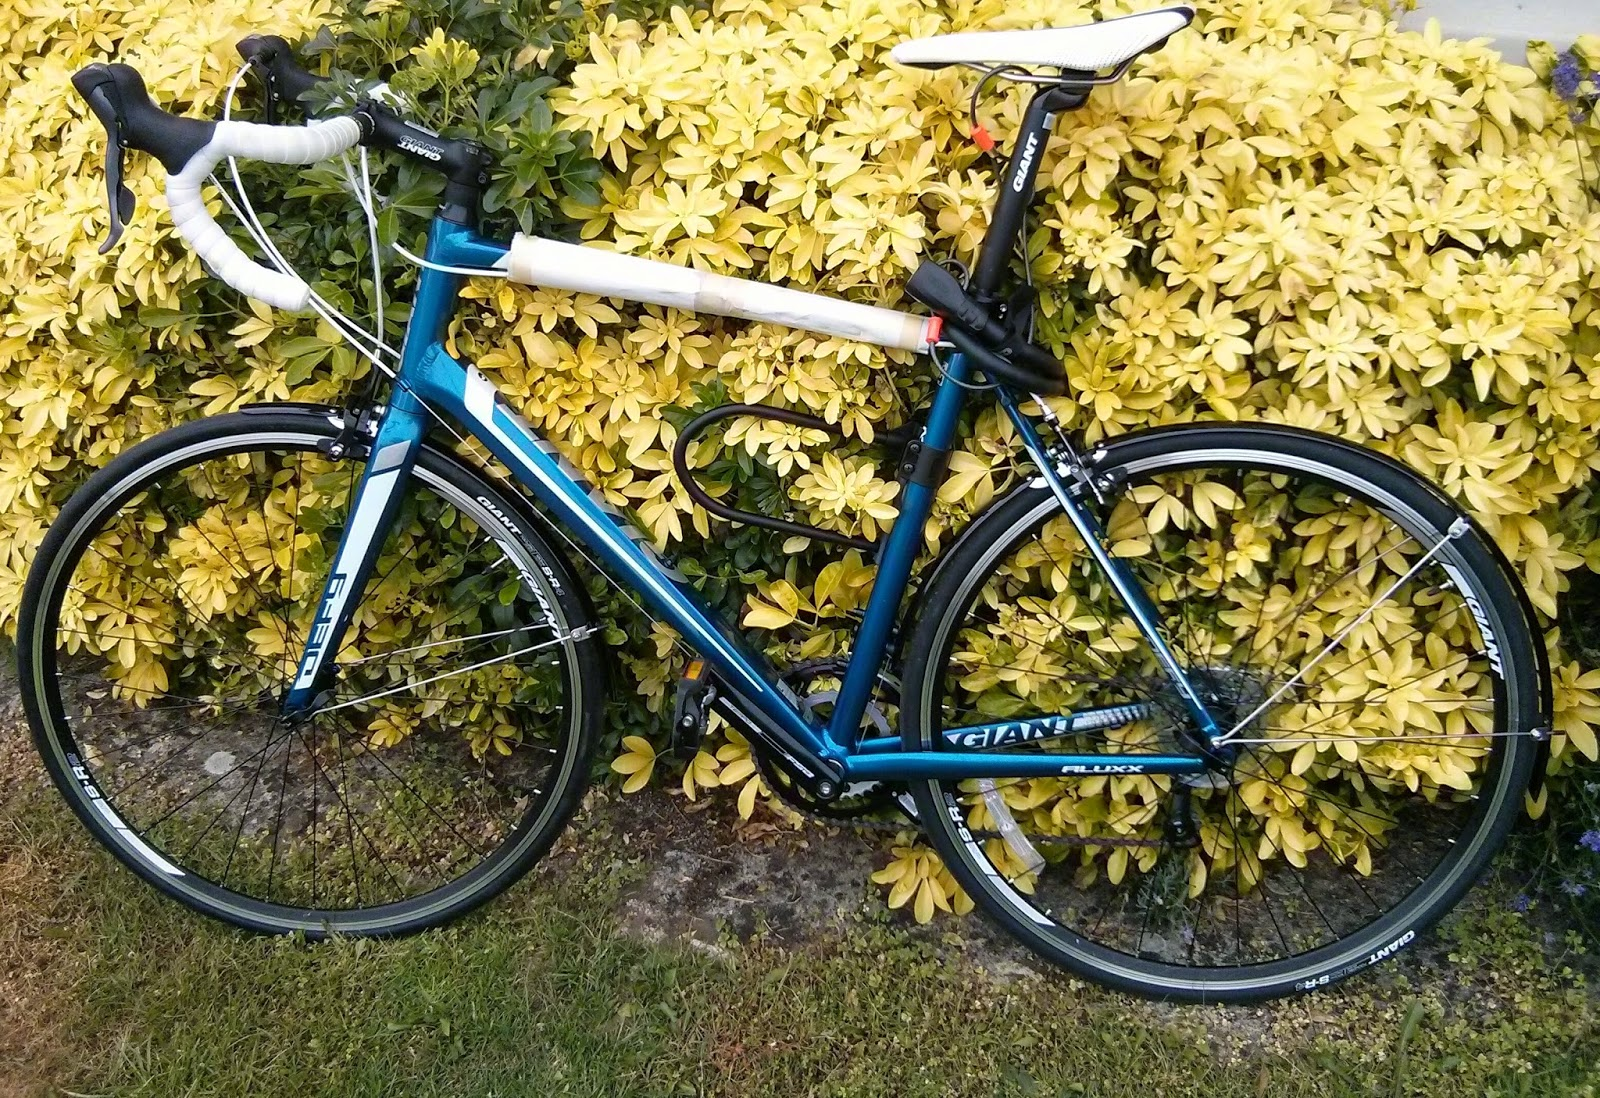 Chuck Glider S Bicycle Workshop Giant Defy Mudguards Or Fenders